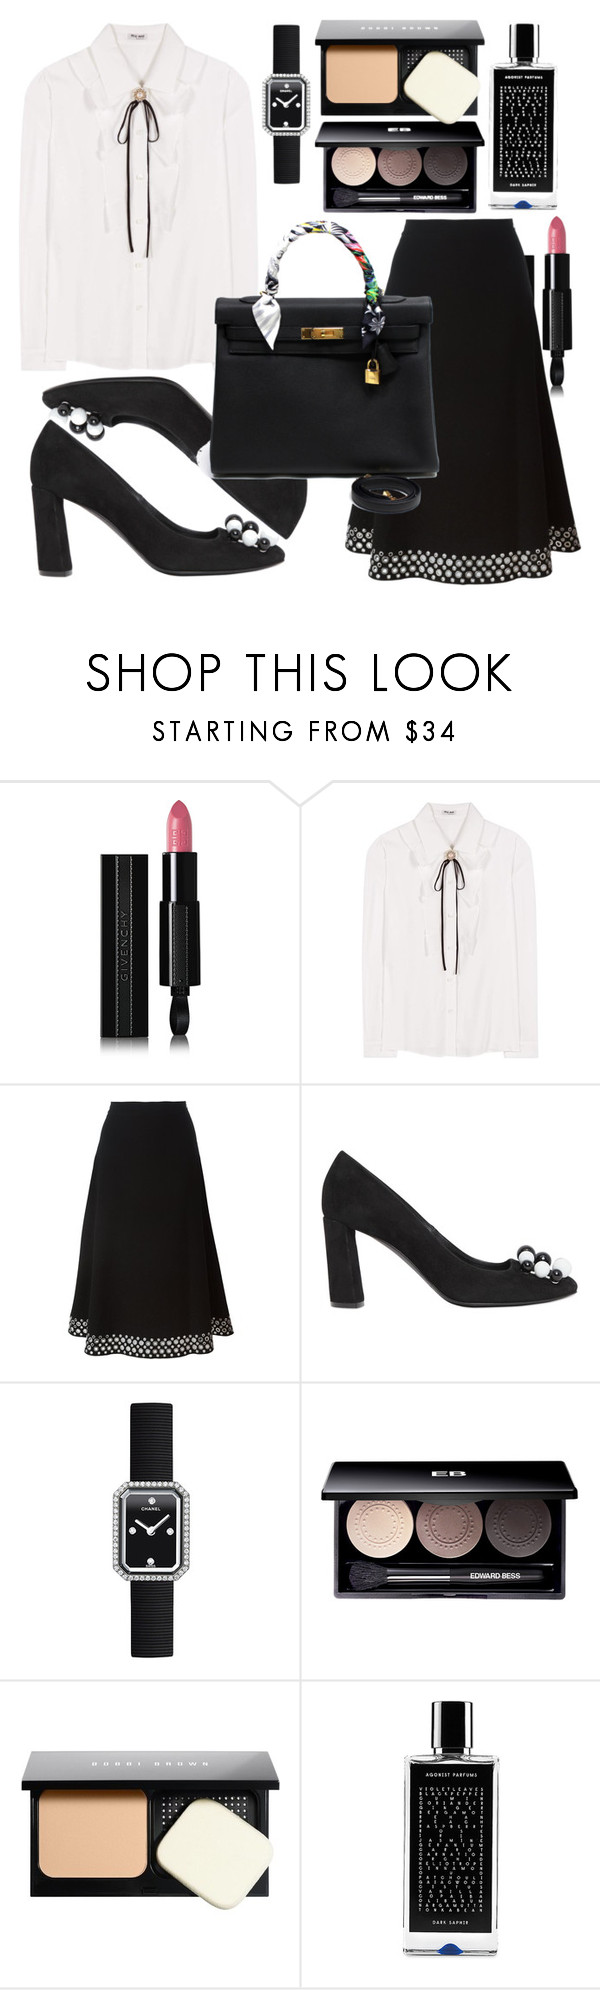 """Untitled #447"" by ngkhhuynstyle ❤ liked on Polyvore featuring Givenchy, Miu Miu, Alexander Wang, Casadei, Chanel, Edward Bess, Bobbi Brown Cosmetics, Agonist and Hermès"